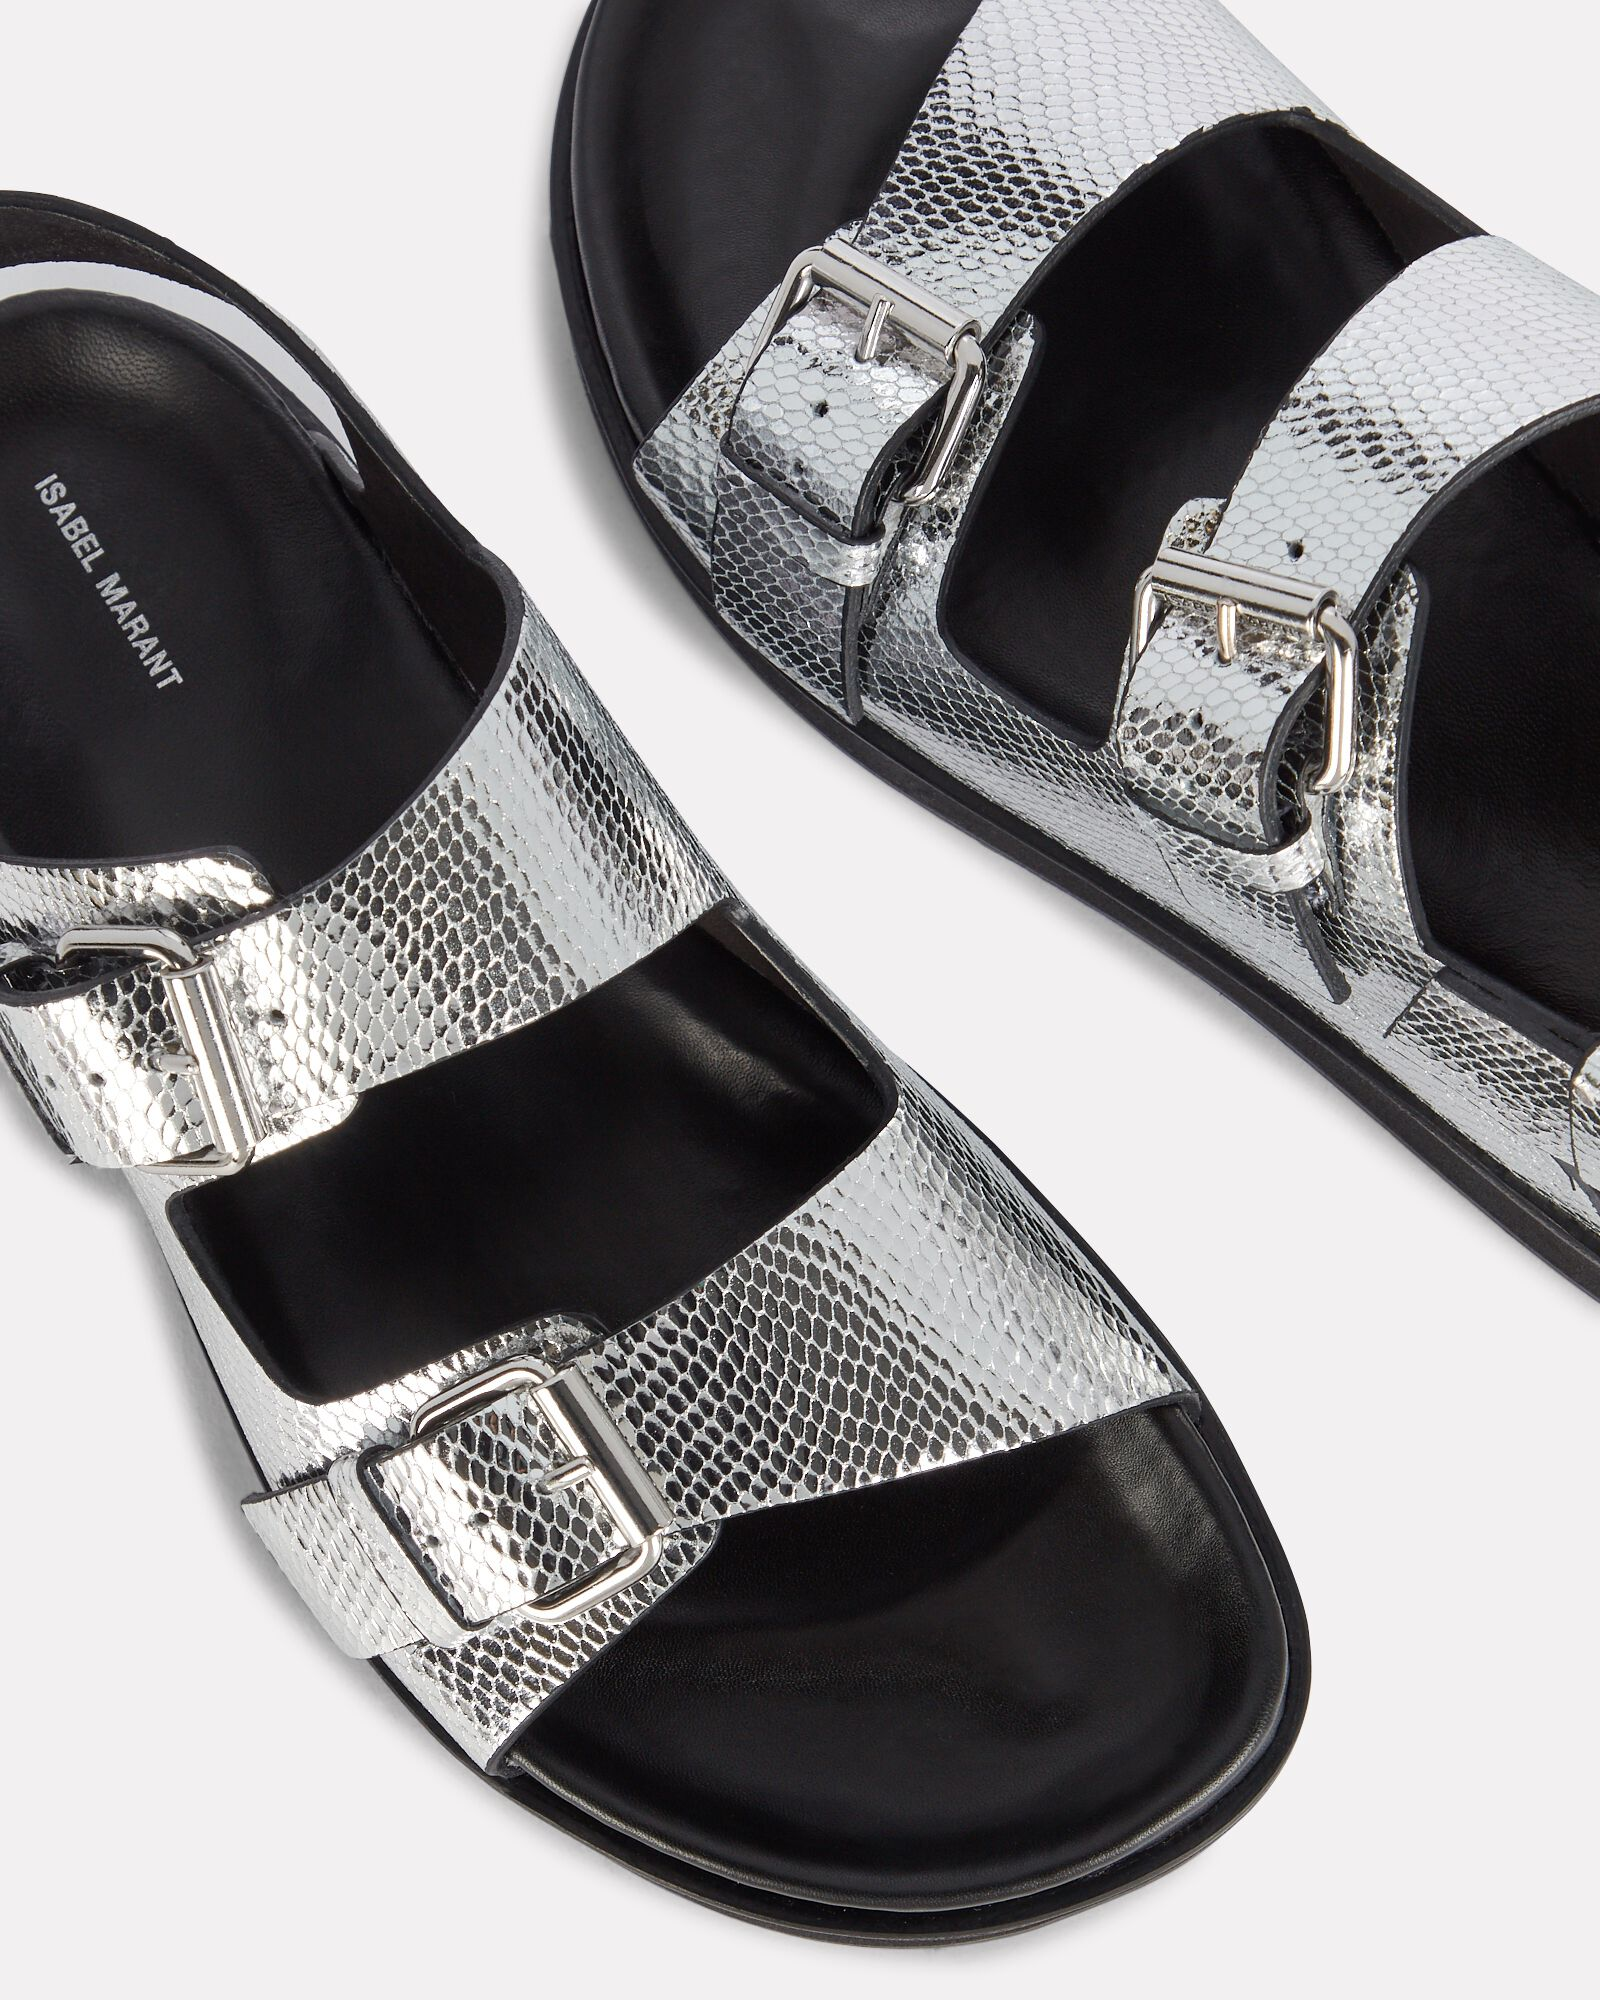 Ophie Metallic Leather Slingback Sandals, SILVER, hi-res